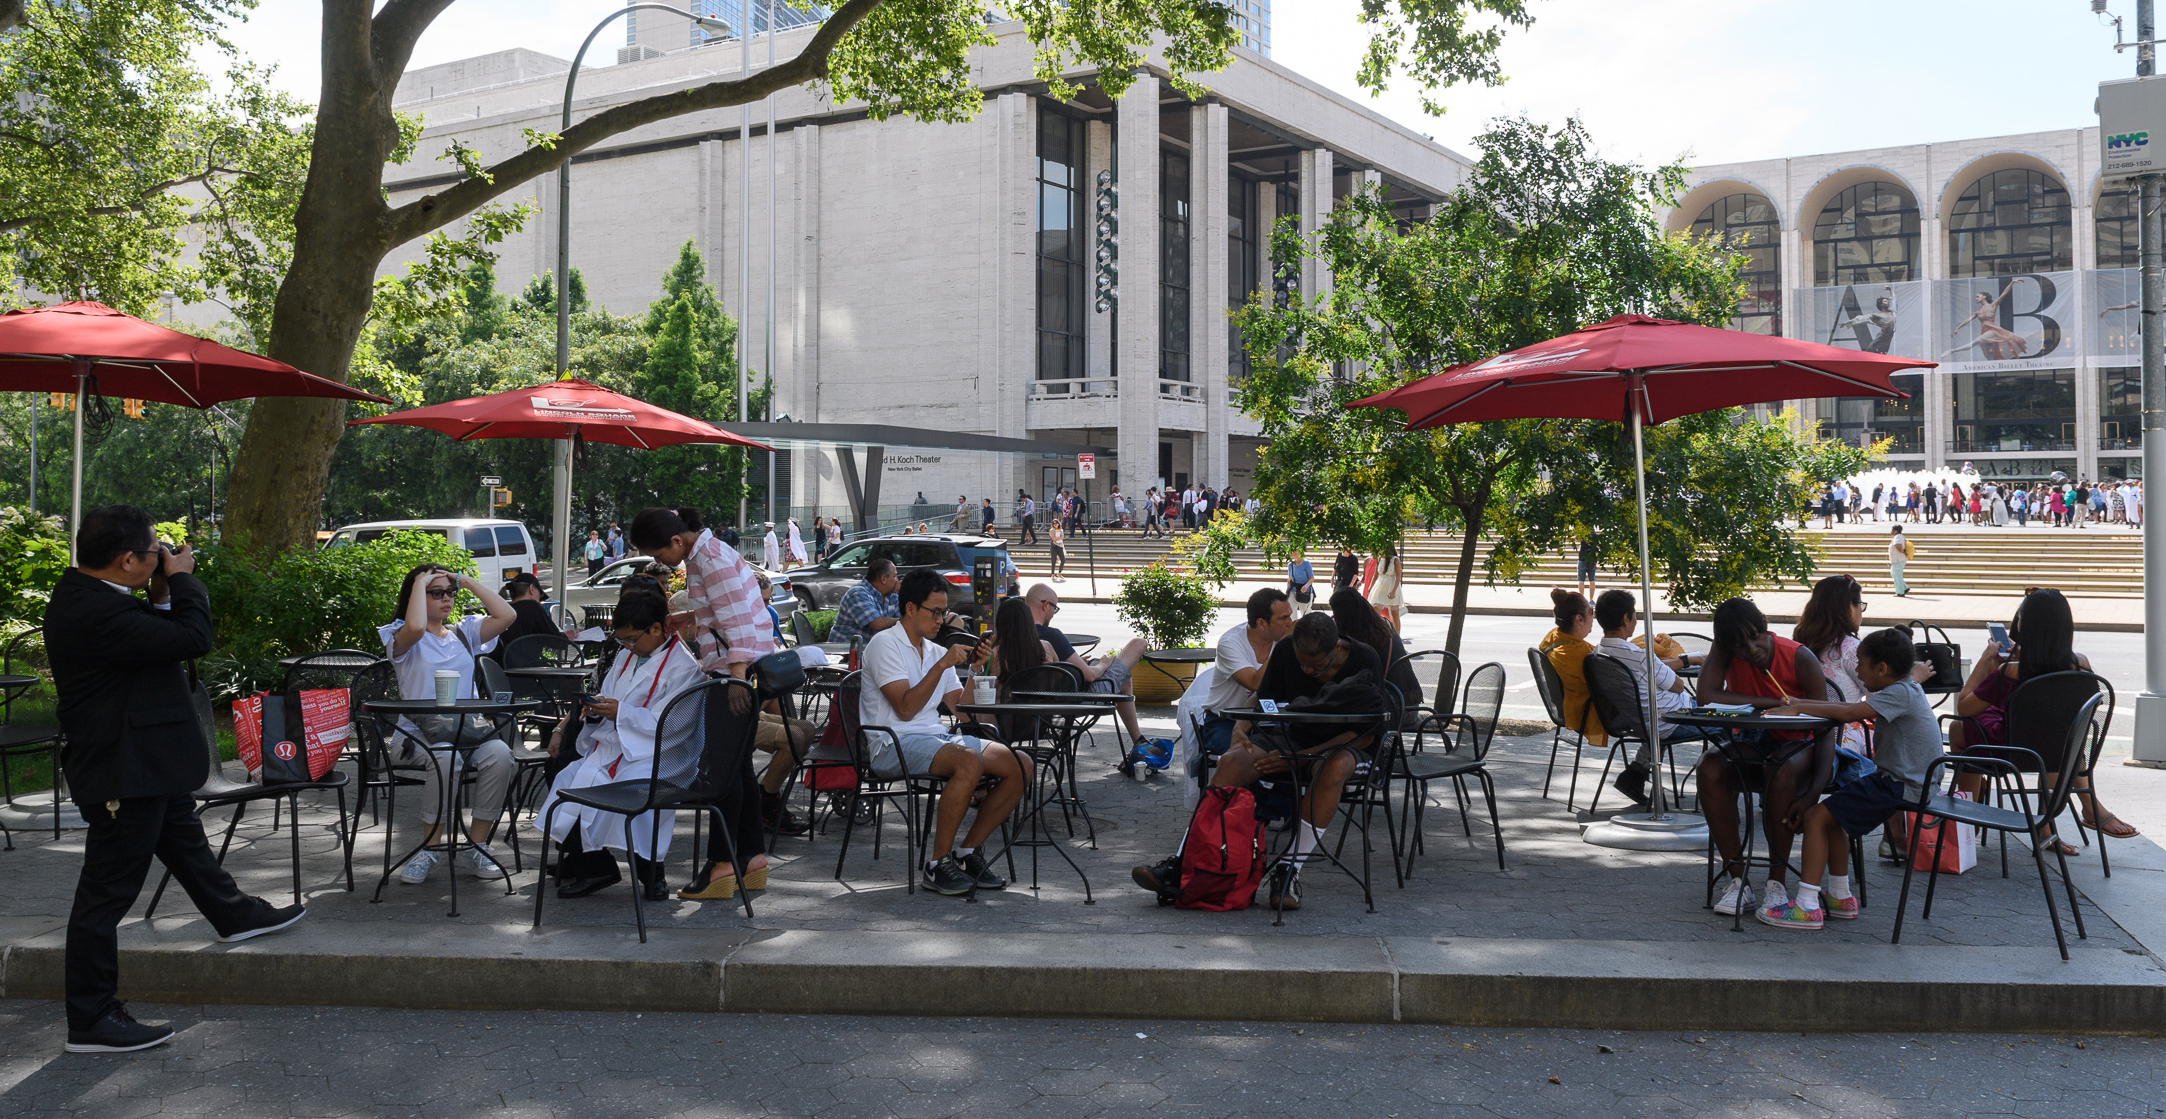 patrons sit and enjoy Dante Park's raised seating area